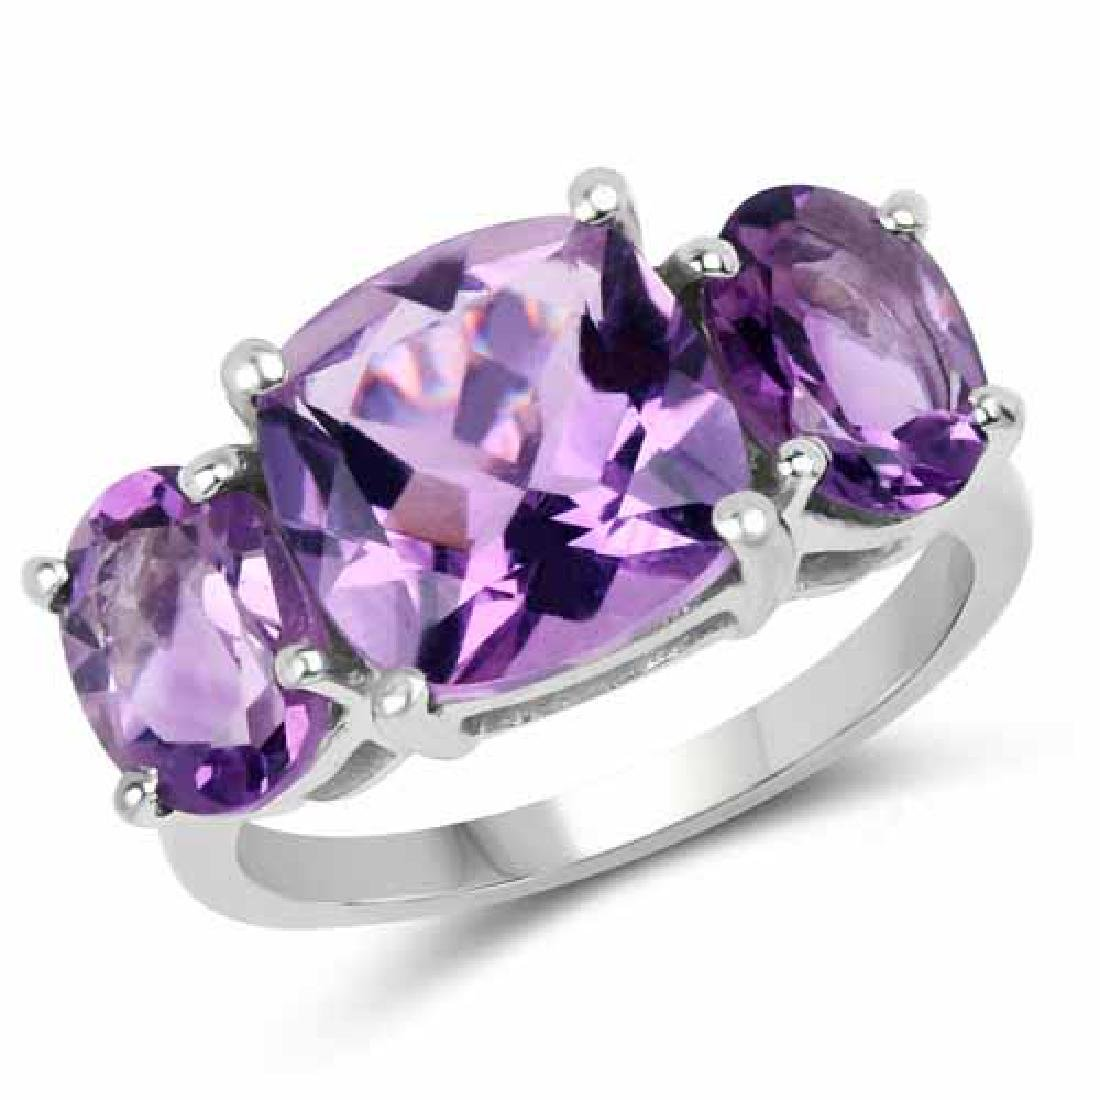 5.95 Carat Genuine Amethyst .925 Sterling Silver Ring